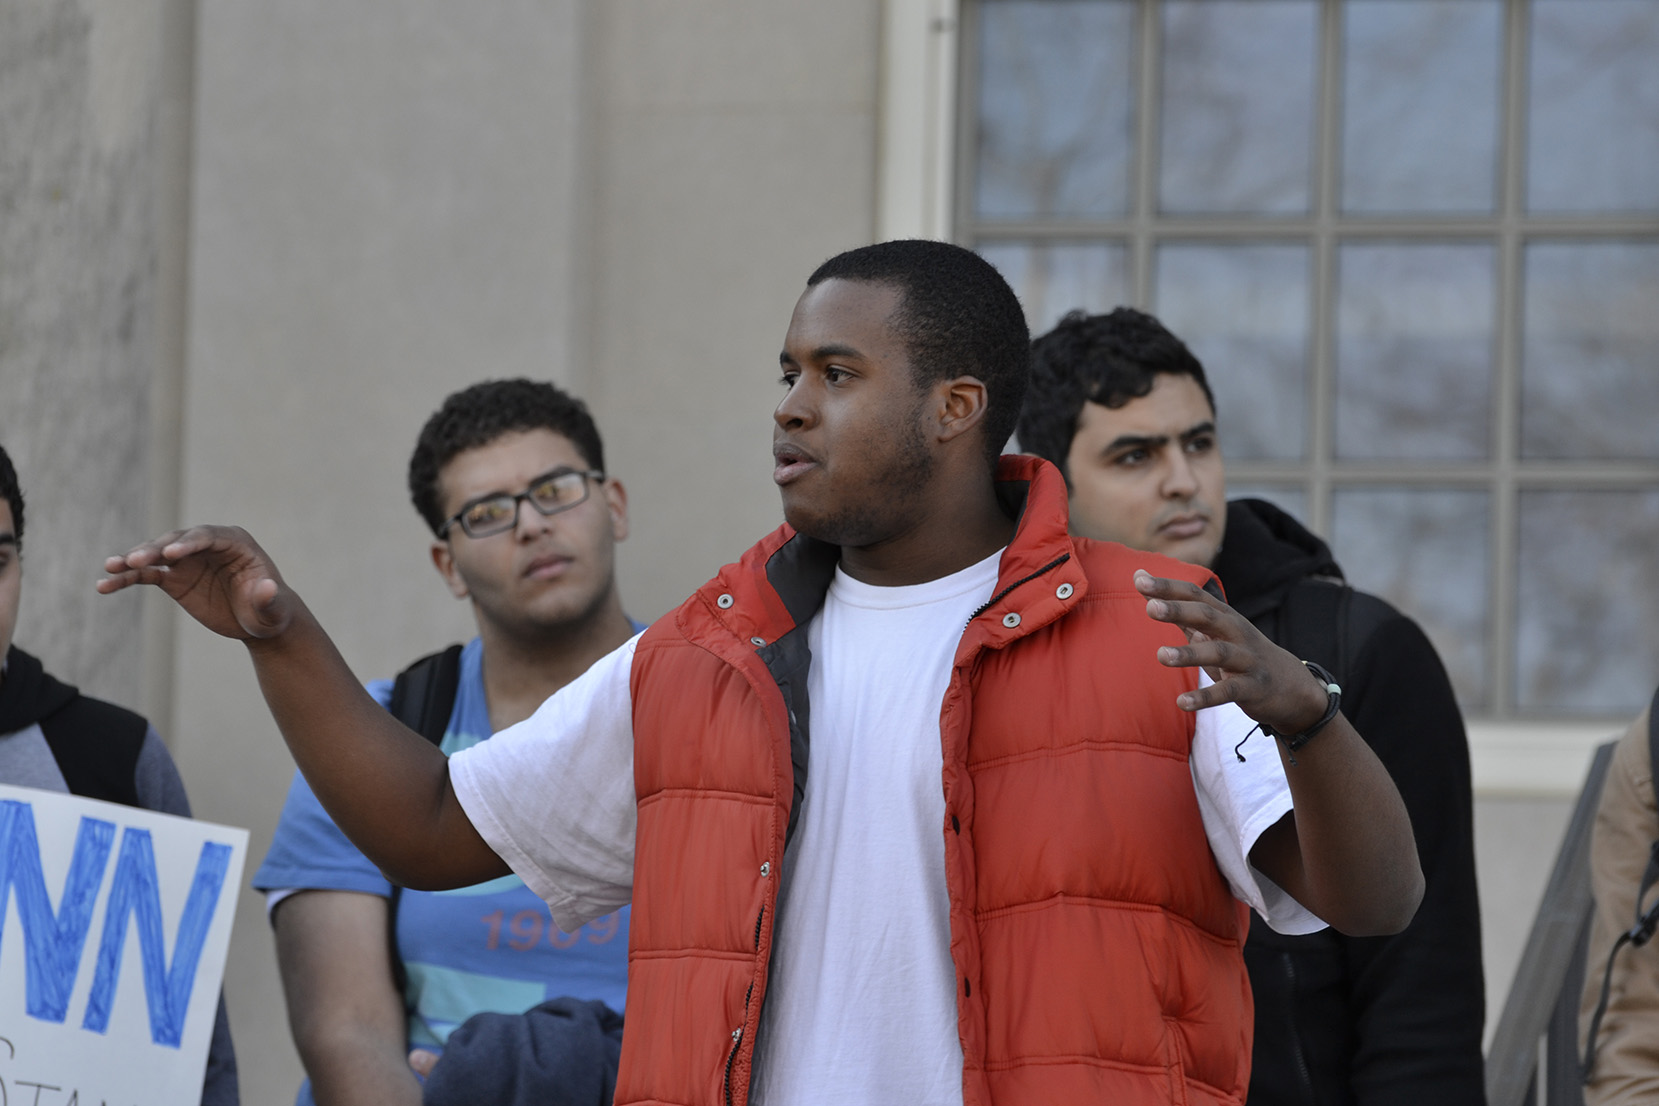 UConn senior biomedical engineering major Julian Rose addressed the crowd behind Wilbur Cross on November 16, 2015. The demonstration was held in response to the racist comments written on Mahmoud Hashem's dorm room door. (Rebecca Newman/The Daily Campus).